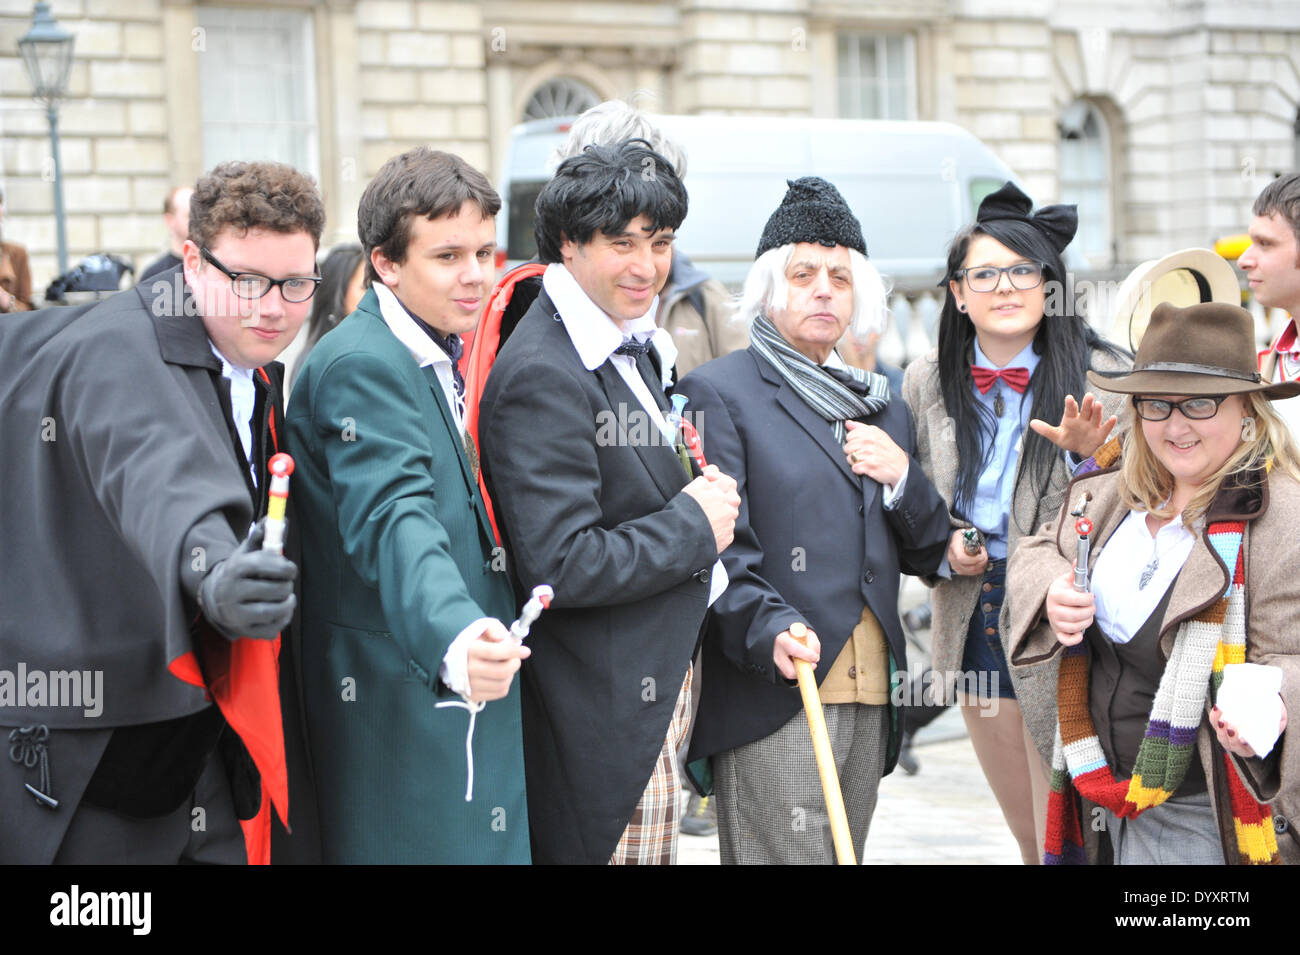 Somerset House, London, UK. 27th April 2014. Multiple Doctor Who's pose in Somerset House for the Sci-Fi London Festival Costume Parade. Credit:  Matthew Chattle/Alamy Live News - Stock Image